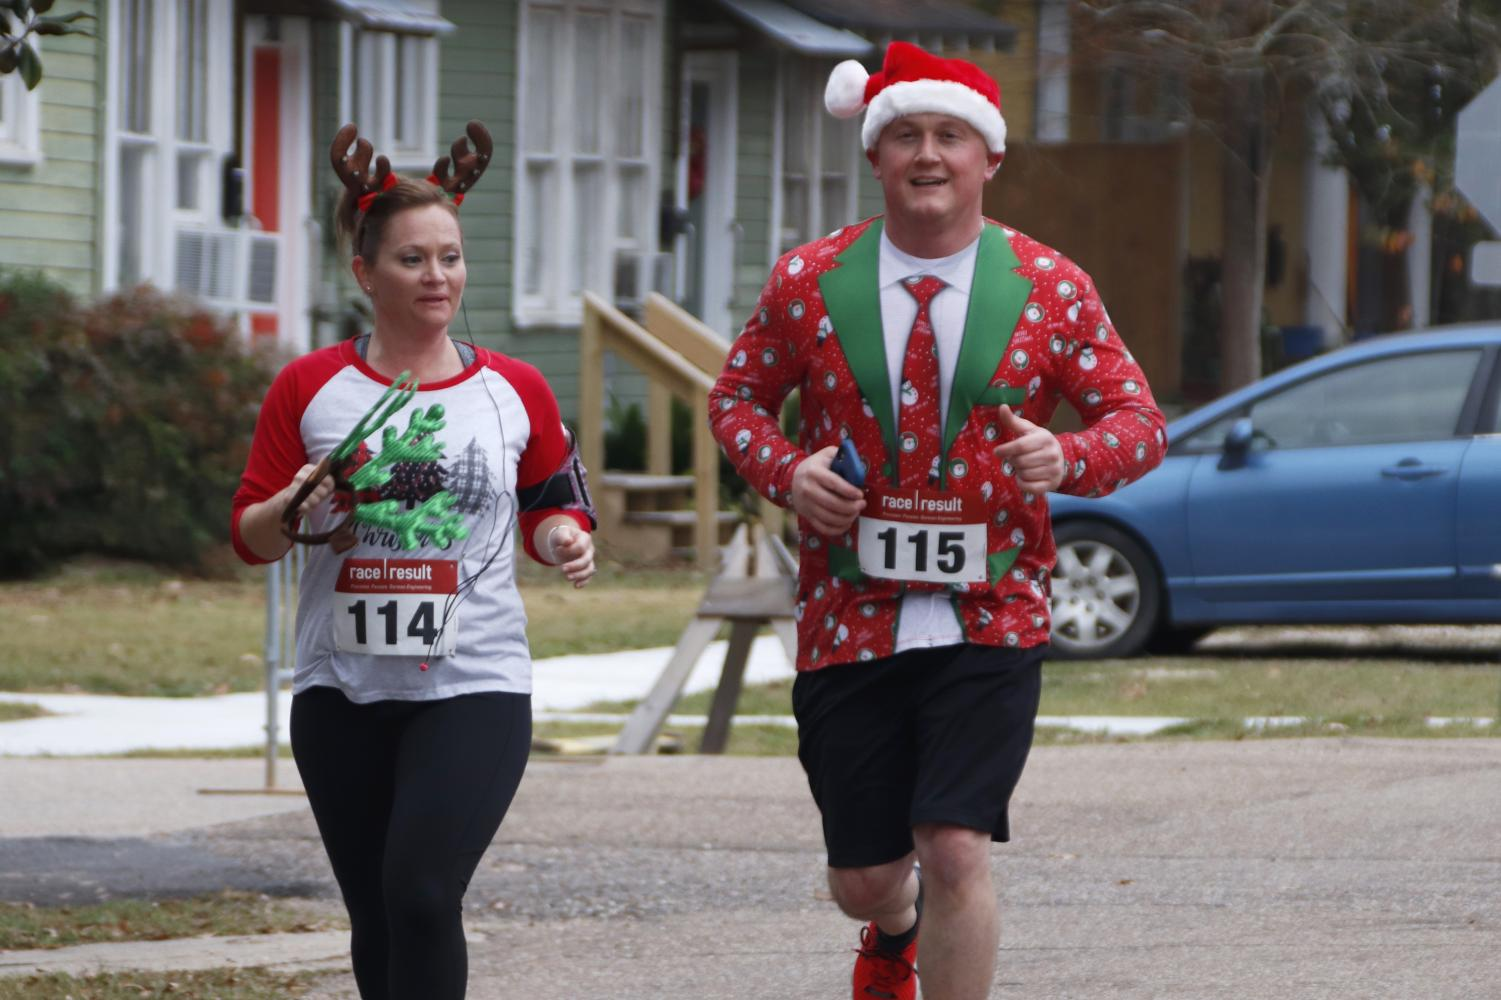 Runners in holiday apparel participate in the annual Reindeer Run 5K Race in downtown Hammond. The annual marathon was held on Dec. 7 in Cate Square Park.